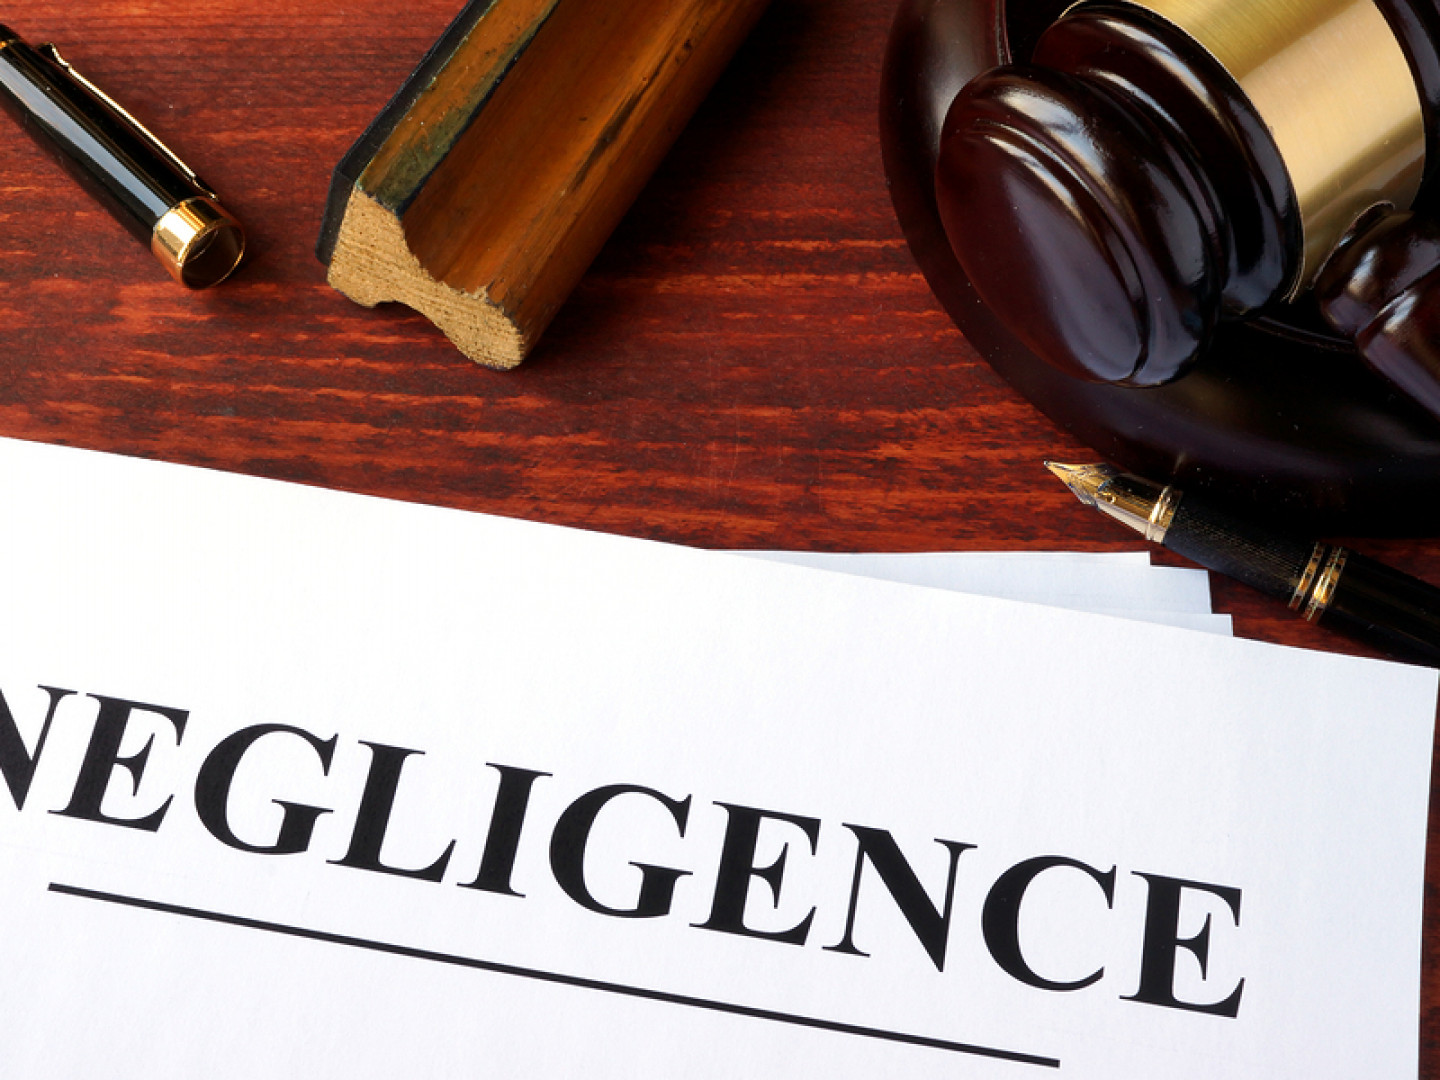 Contact a Negligence Lawyer in Manassas & Fairfax, VA